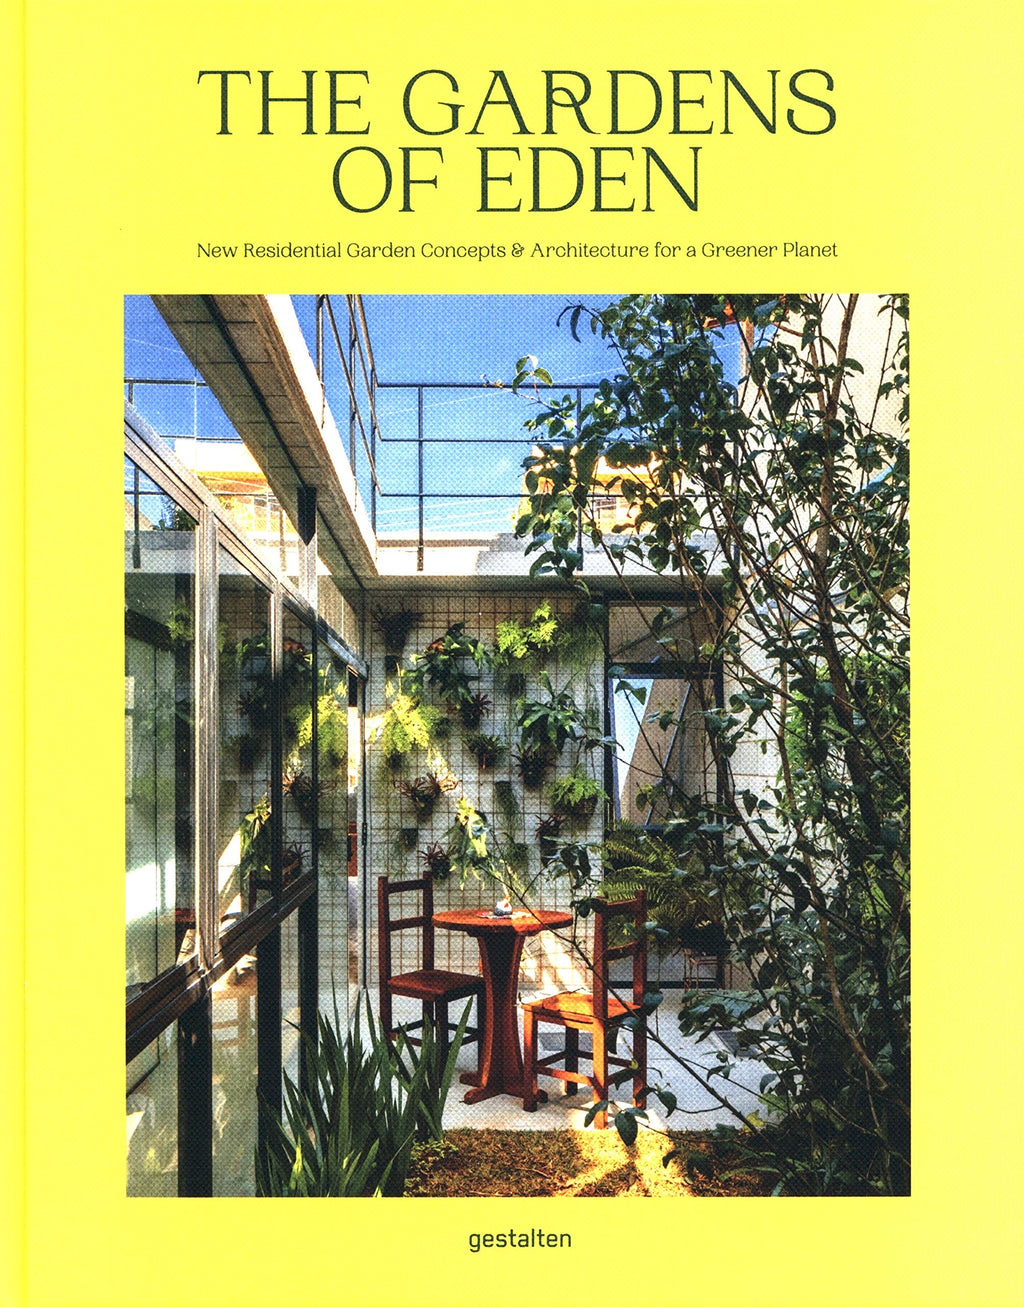 The Gardens of Eden - New Residential Garden Concepts & Architecture for a Greener Planet